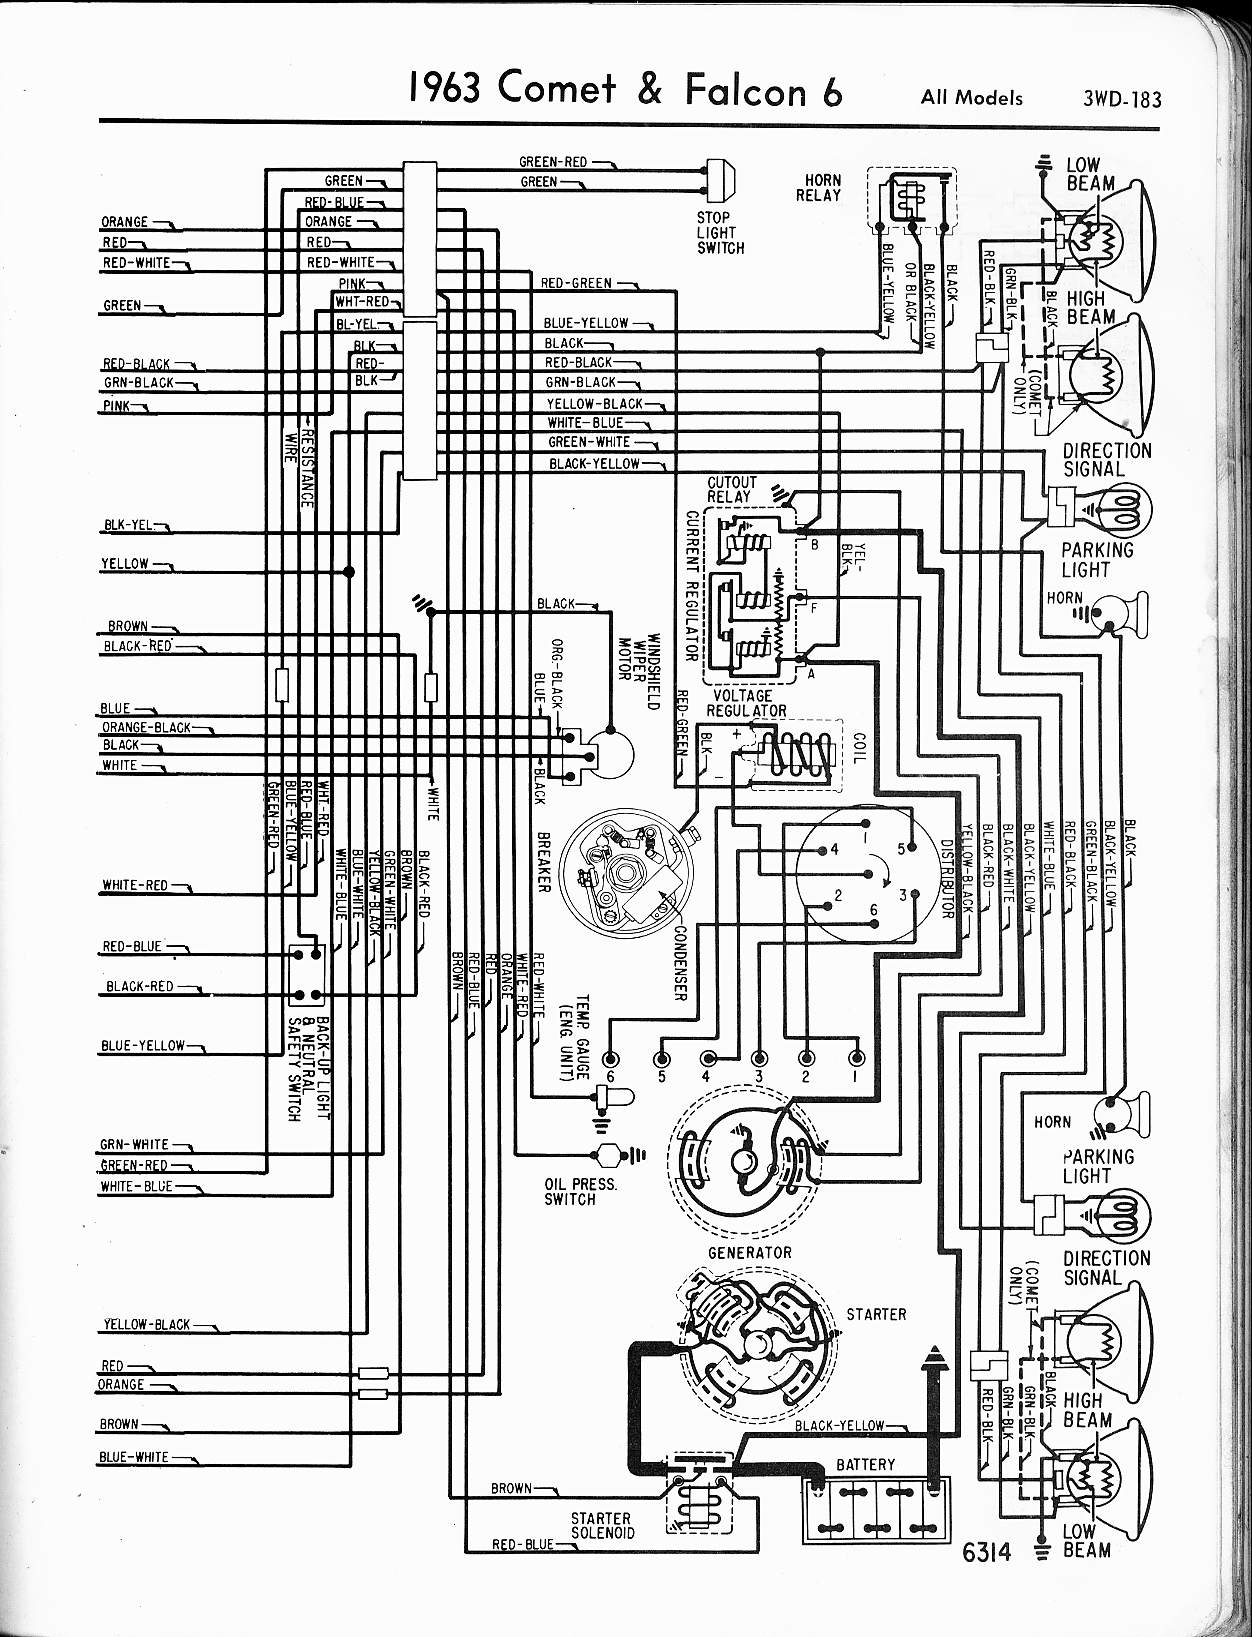 hight resolution of 63 ford econoline wiring diagram wiring diagram third level 1980 ford f100 wiring diagram 1963 ford f100 wiring diagram